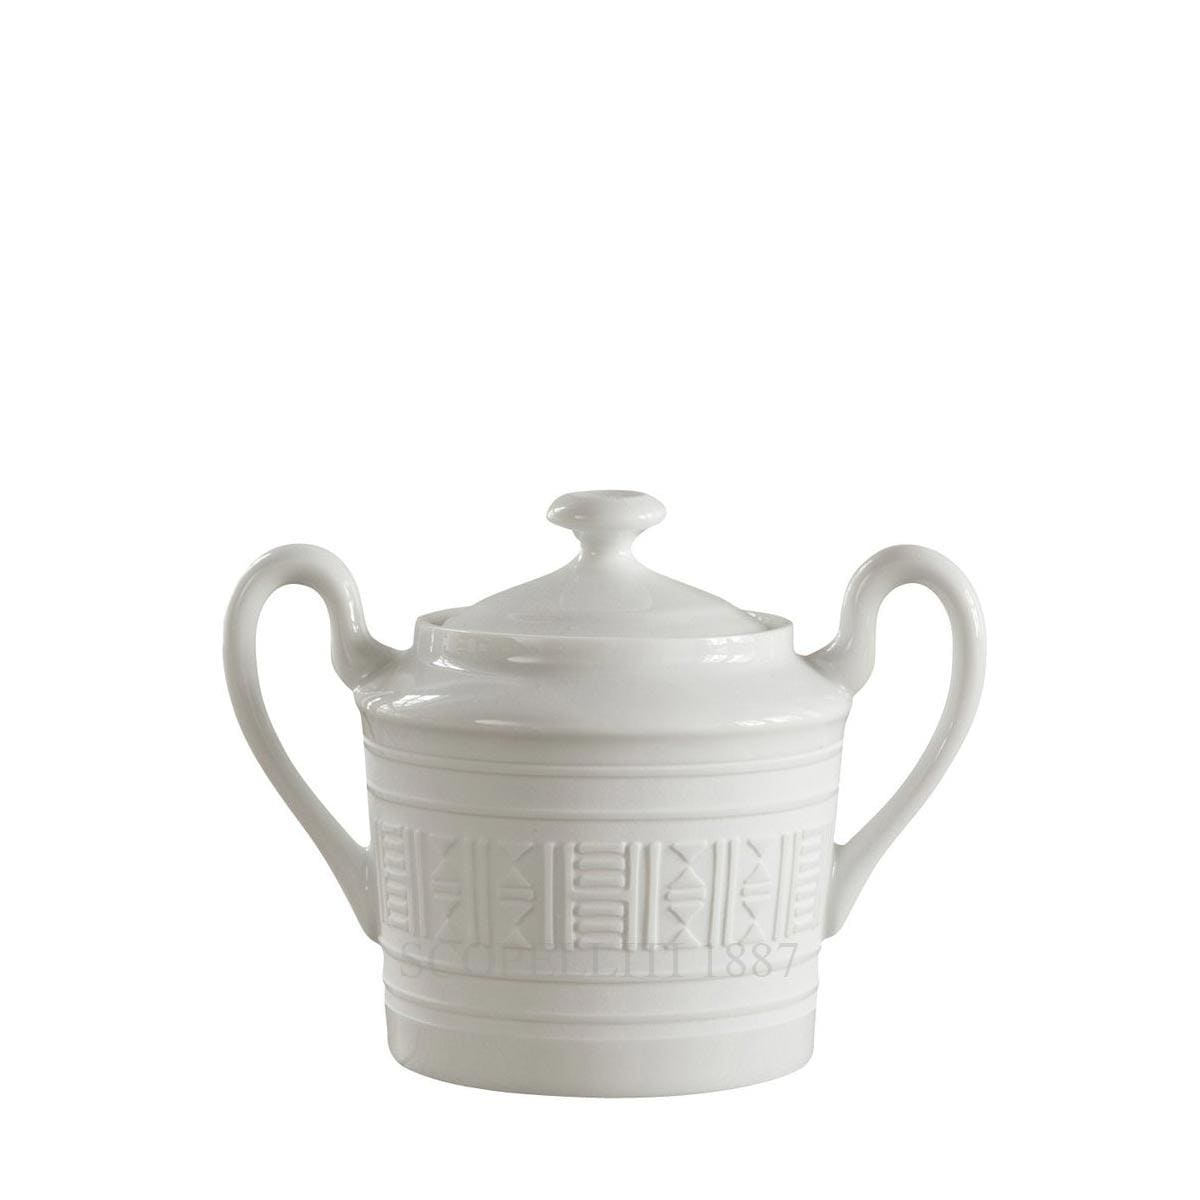 Hermes Egée white Sugar Bowl